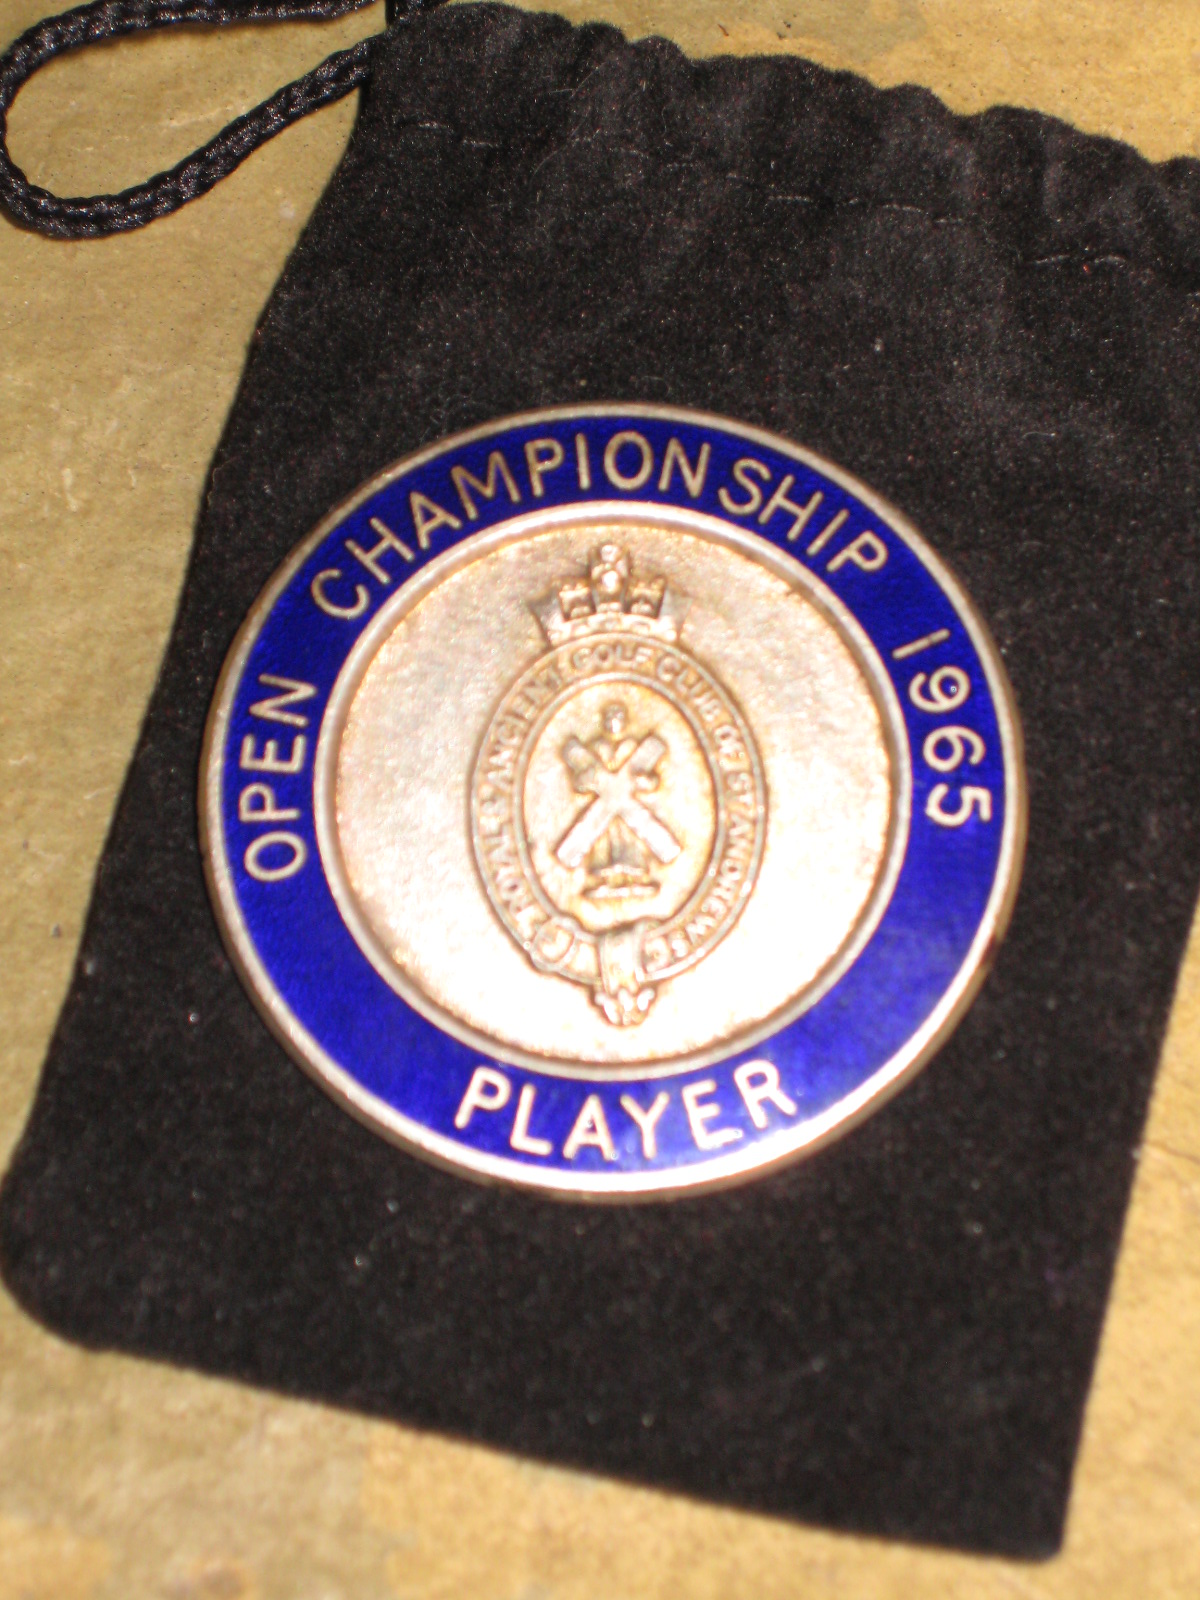 players pins